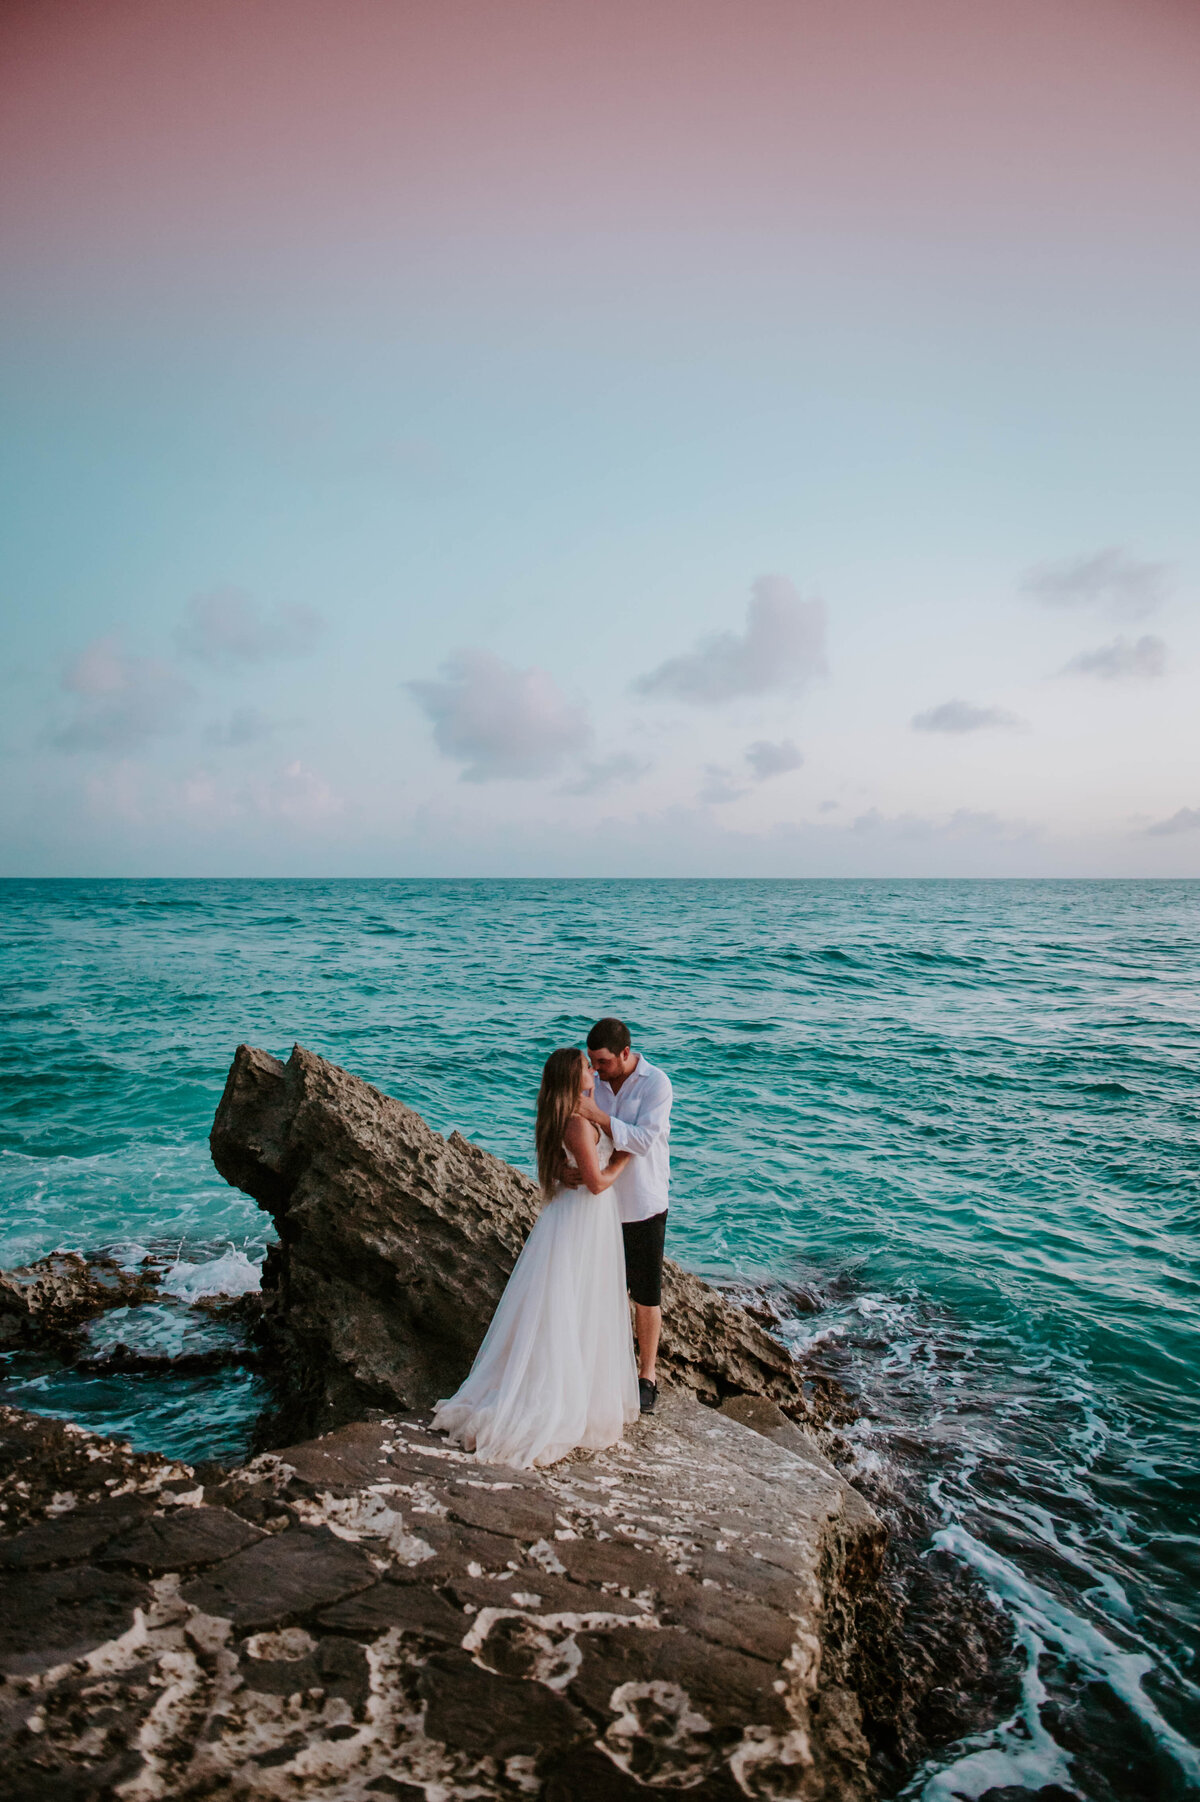 isla-mujeres-wedding-photographer-guthrie-zama-mexico-tulum-cancun-beach-destination-3945